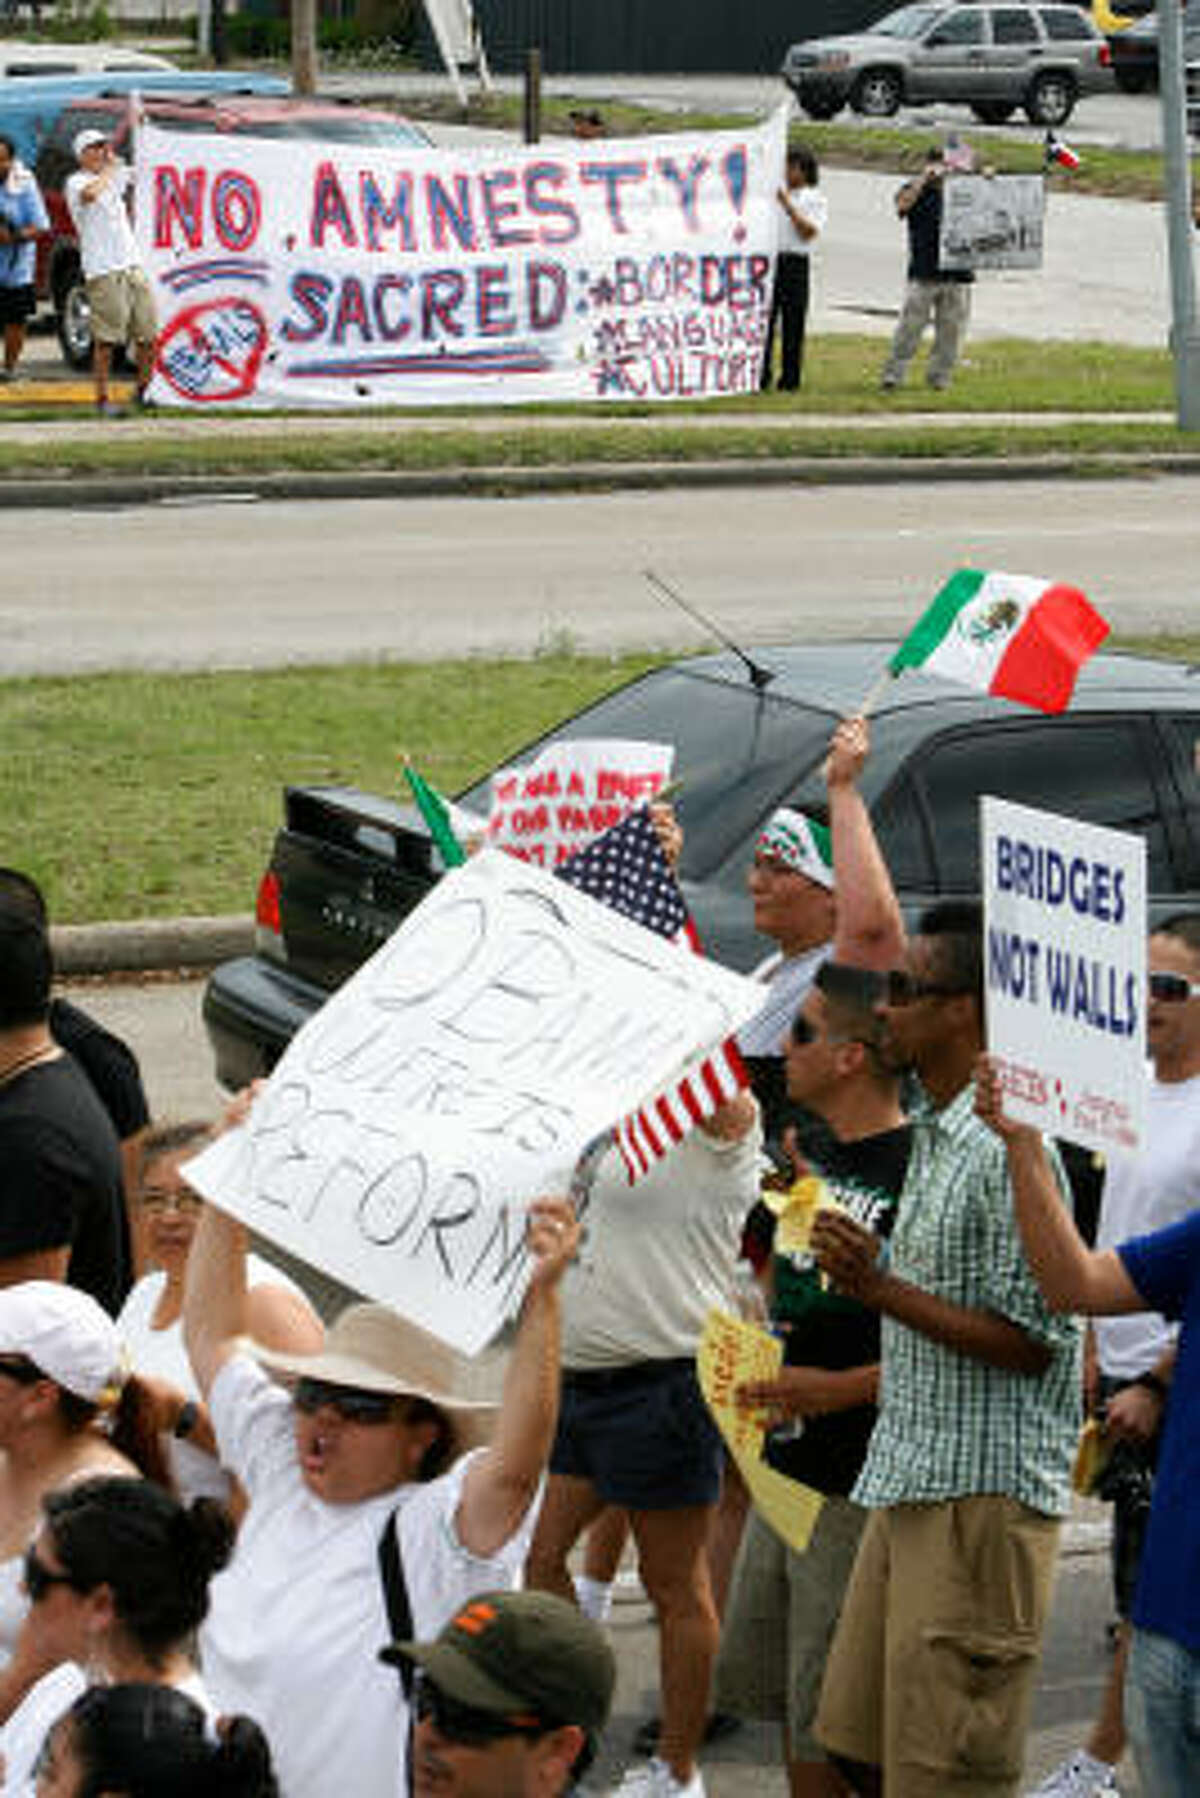 Houston: Immigration reform supporters march past counter-protesters along Bellaire Boulevard.